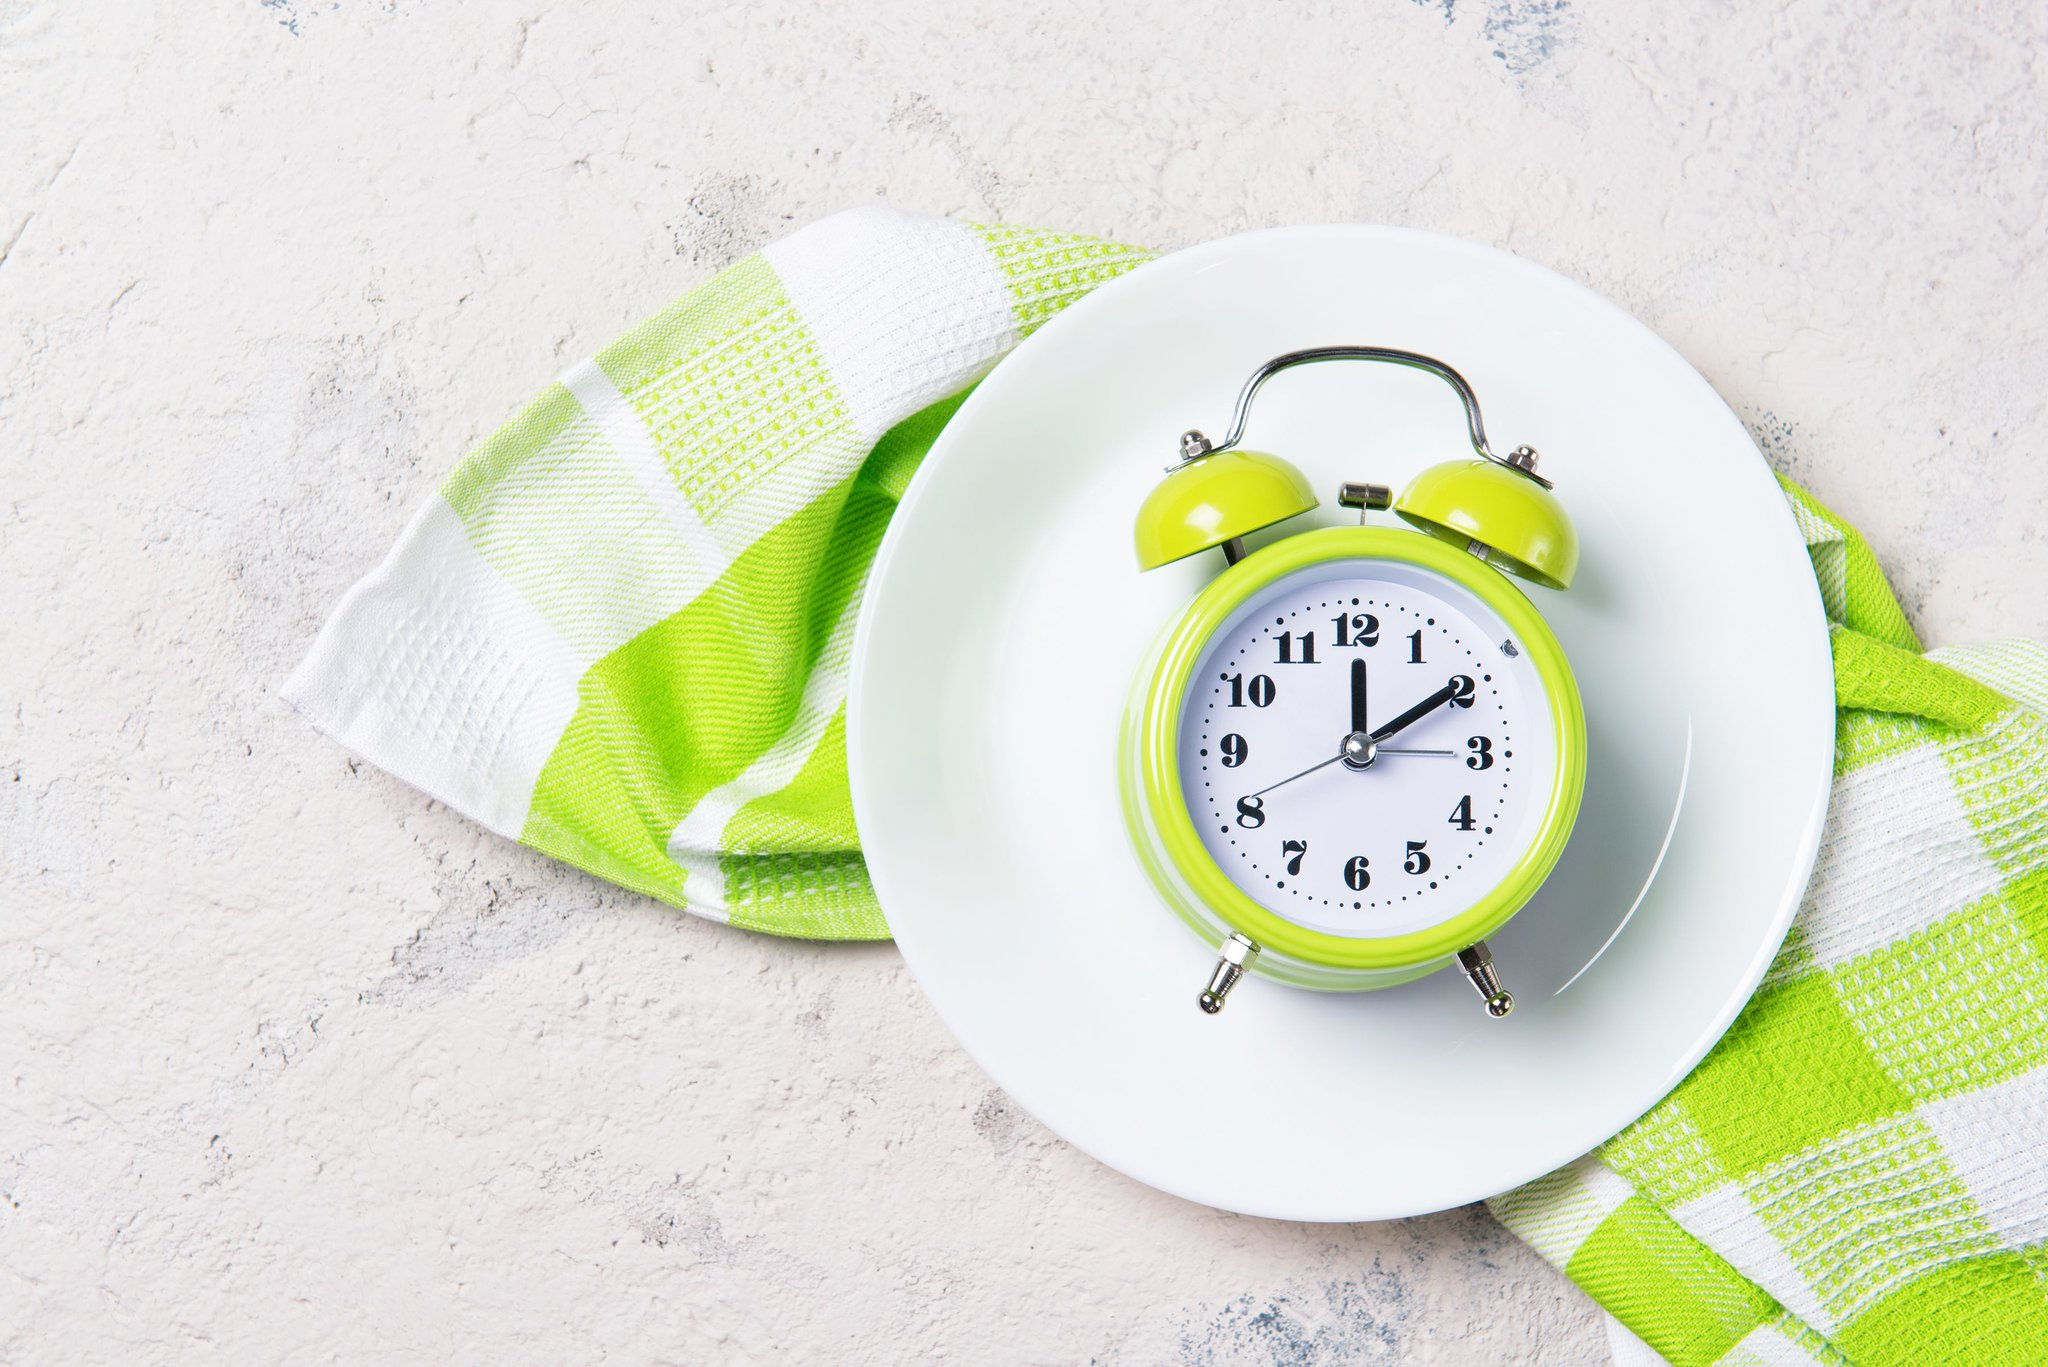 Fasting for 16 hours allows the body and brain to go into cellular cleanup mode, and shifts the body from burning glucose (sugar) for fuel to burning ketones (fat), resulting in optimized cell health, weight loss & more.  #health #energy #fasting #fatoxidation https://t.co/mx2vbcYvKM